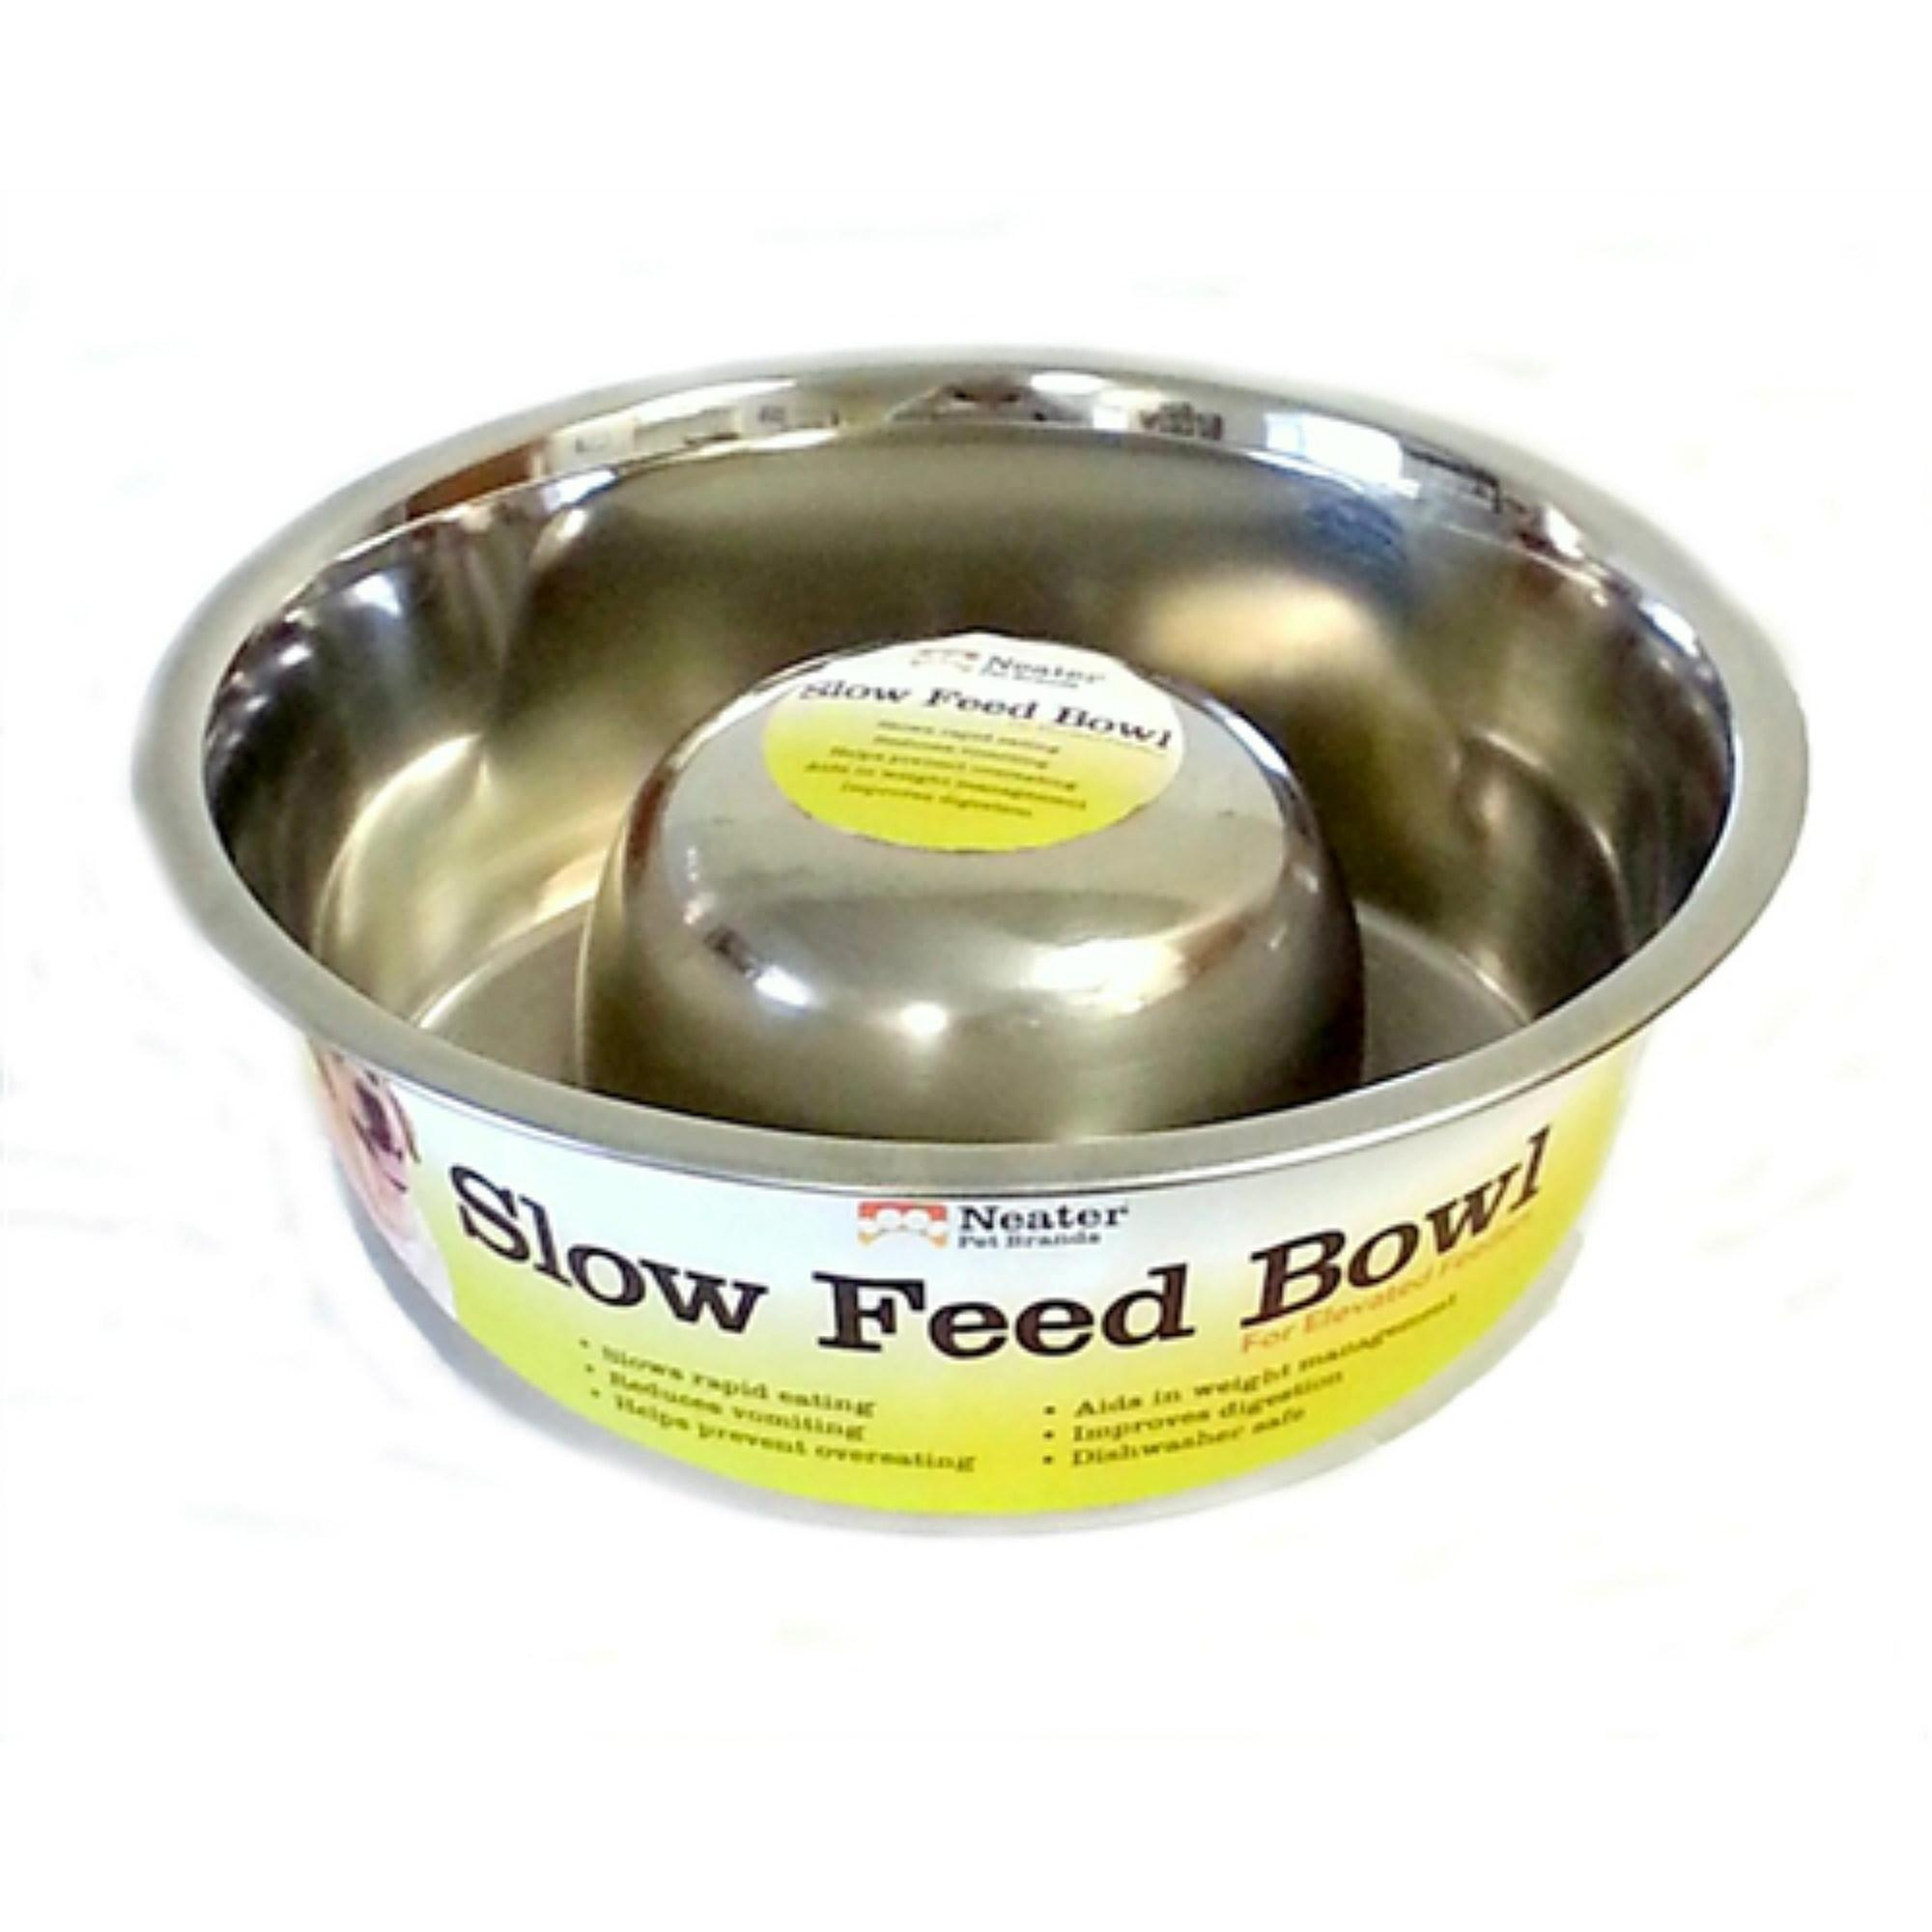 bowls eat feeders feeder bowl elevated drink dogs for slow designer mgn food dog or drnk ceramic raised